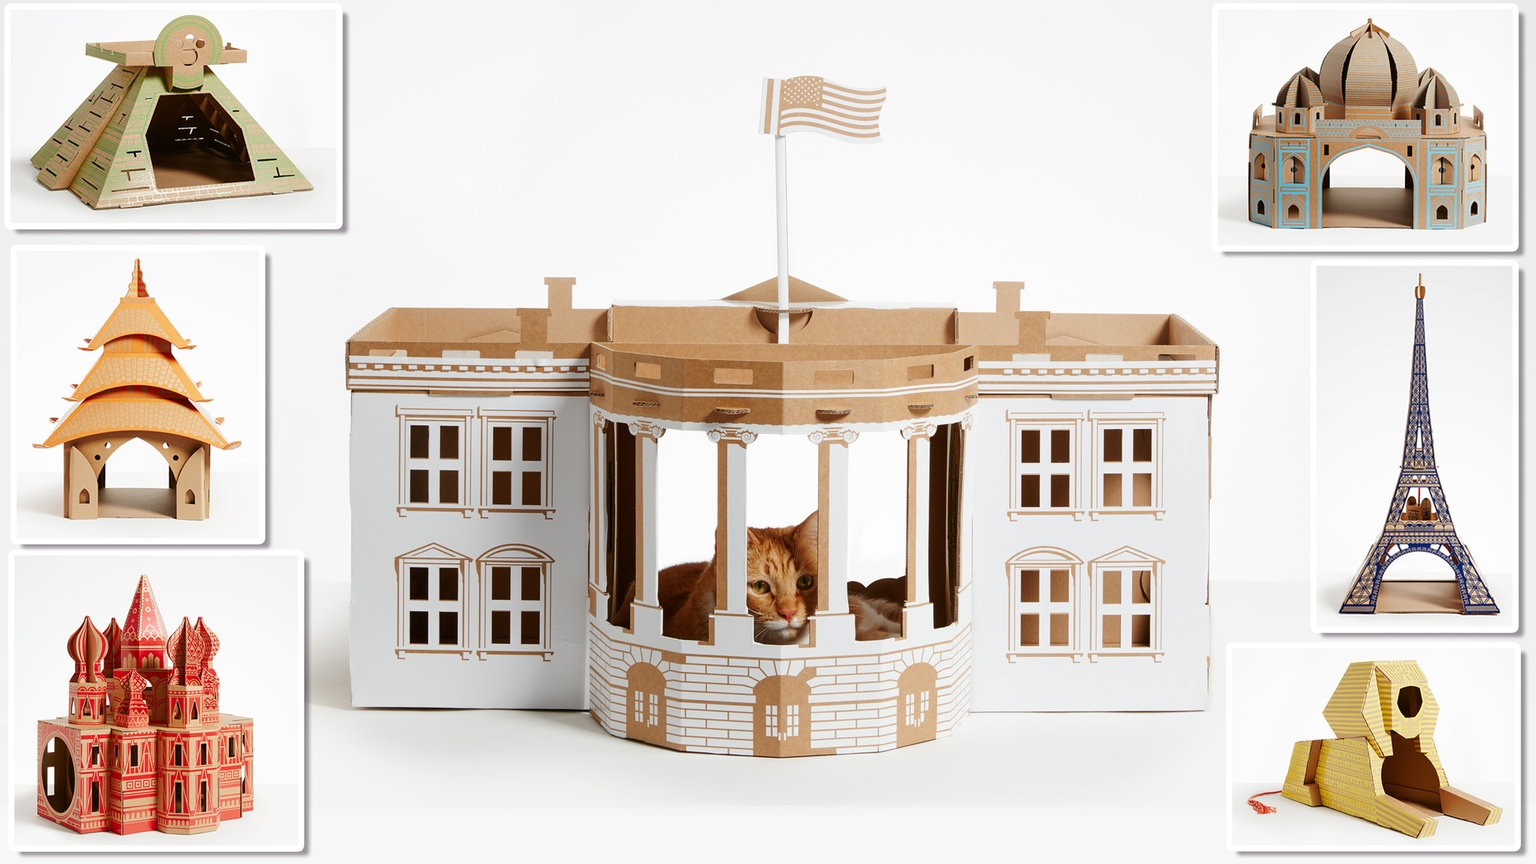 cardboard houses for cats cardboard Company creates cardboard houses for cats inspired architecture icons cardboard houses for cats